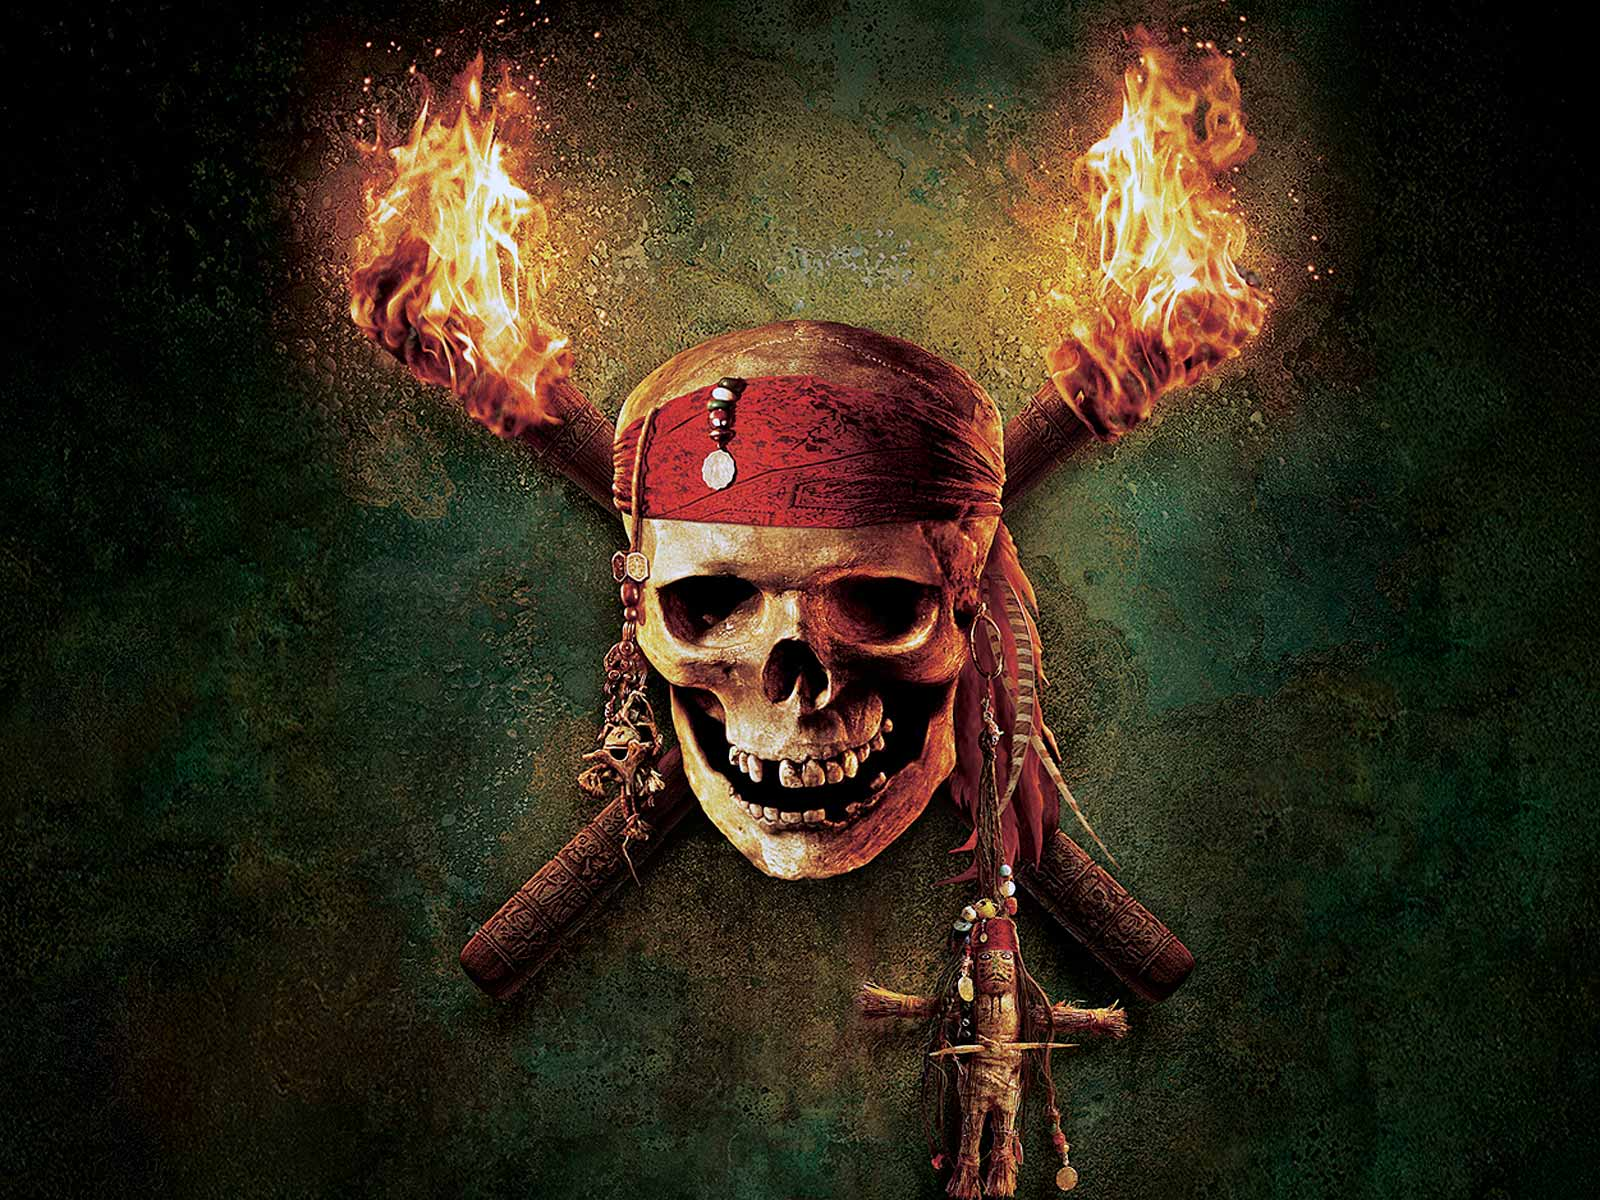 Pirates Of The Caribbean Skull Before 125x83 Pictures To Pin On Pinterest